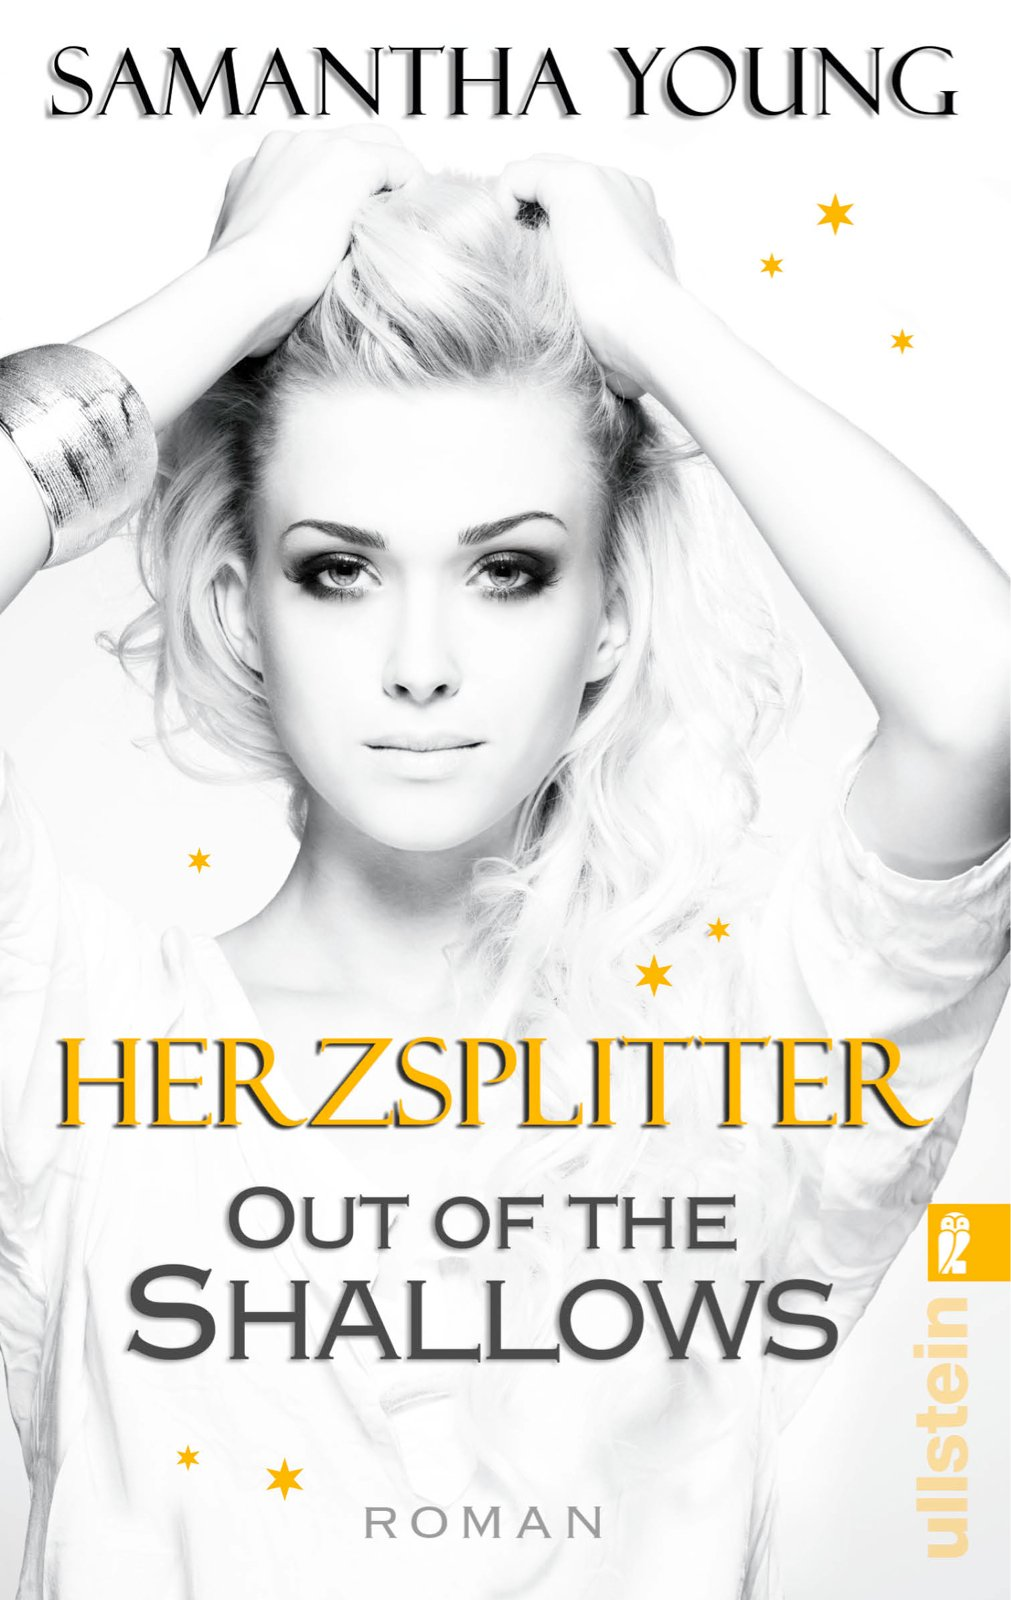 Out of the Shallows - Herzsplitter (Deutsche Ausgabe): Roman